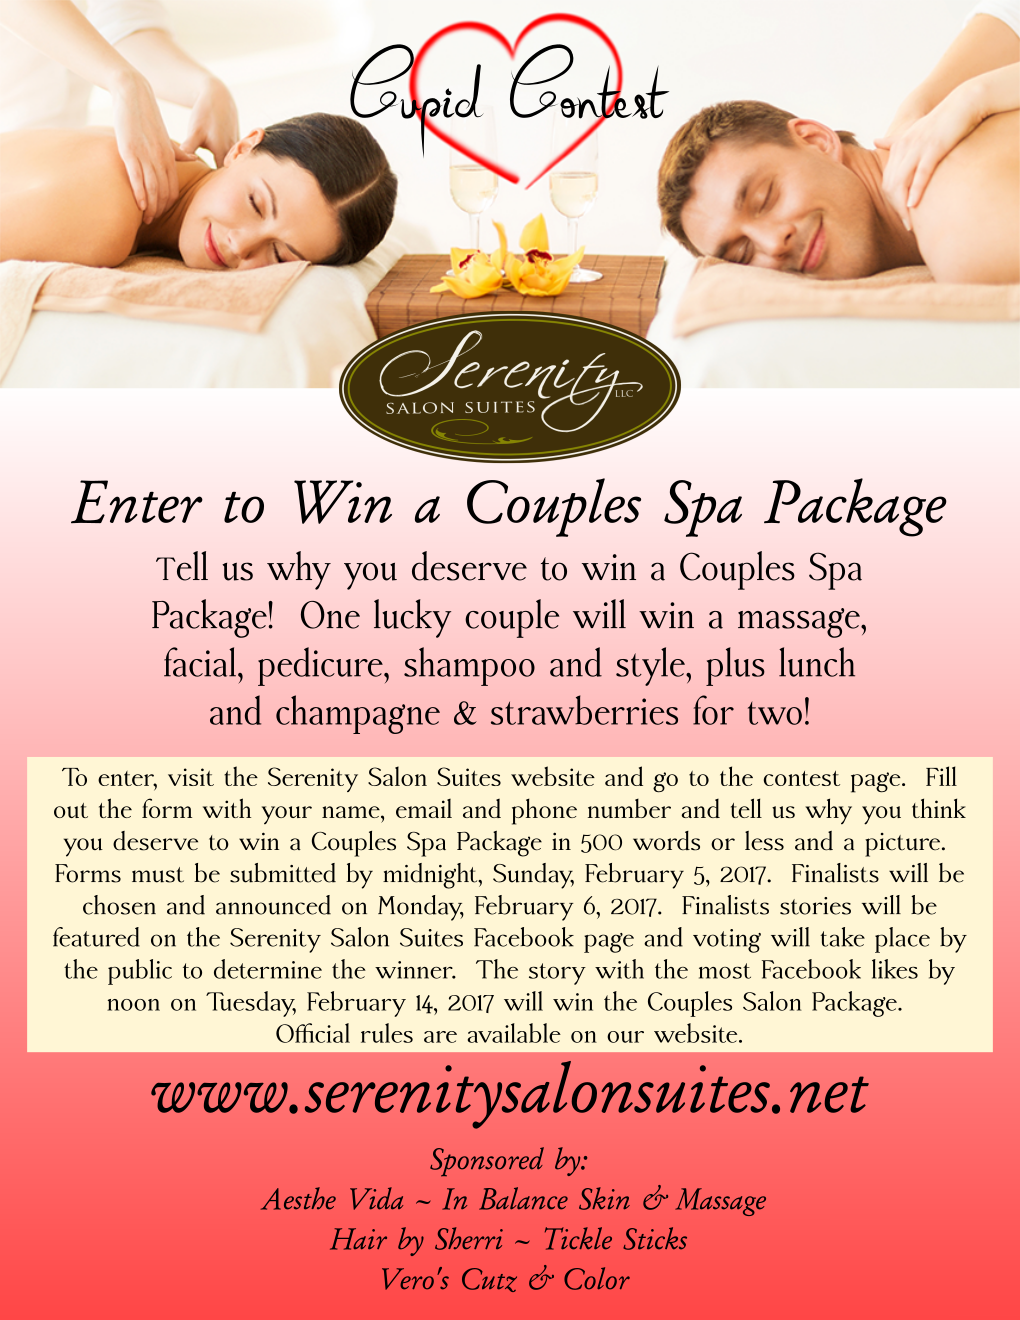 Enter To Win A Valentine S Couples Spa Package Visit Http Serenitysalonsuites Net Contest For Details Couples Spa Packages Couples Spa Spa Packages